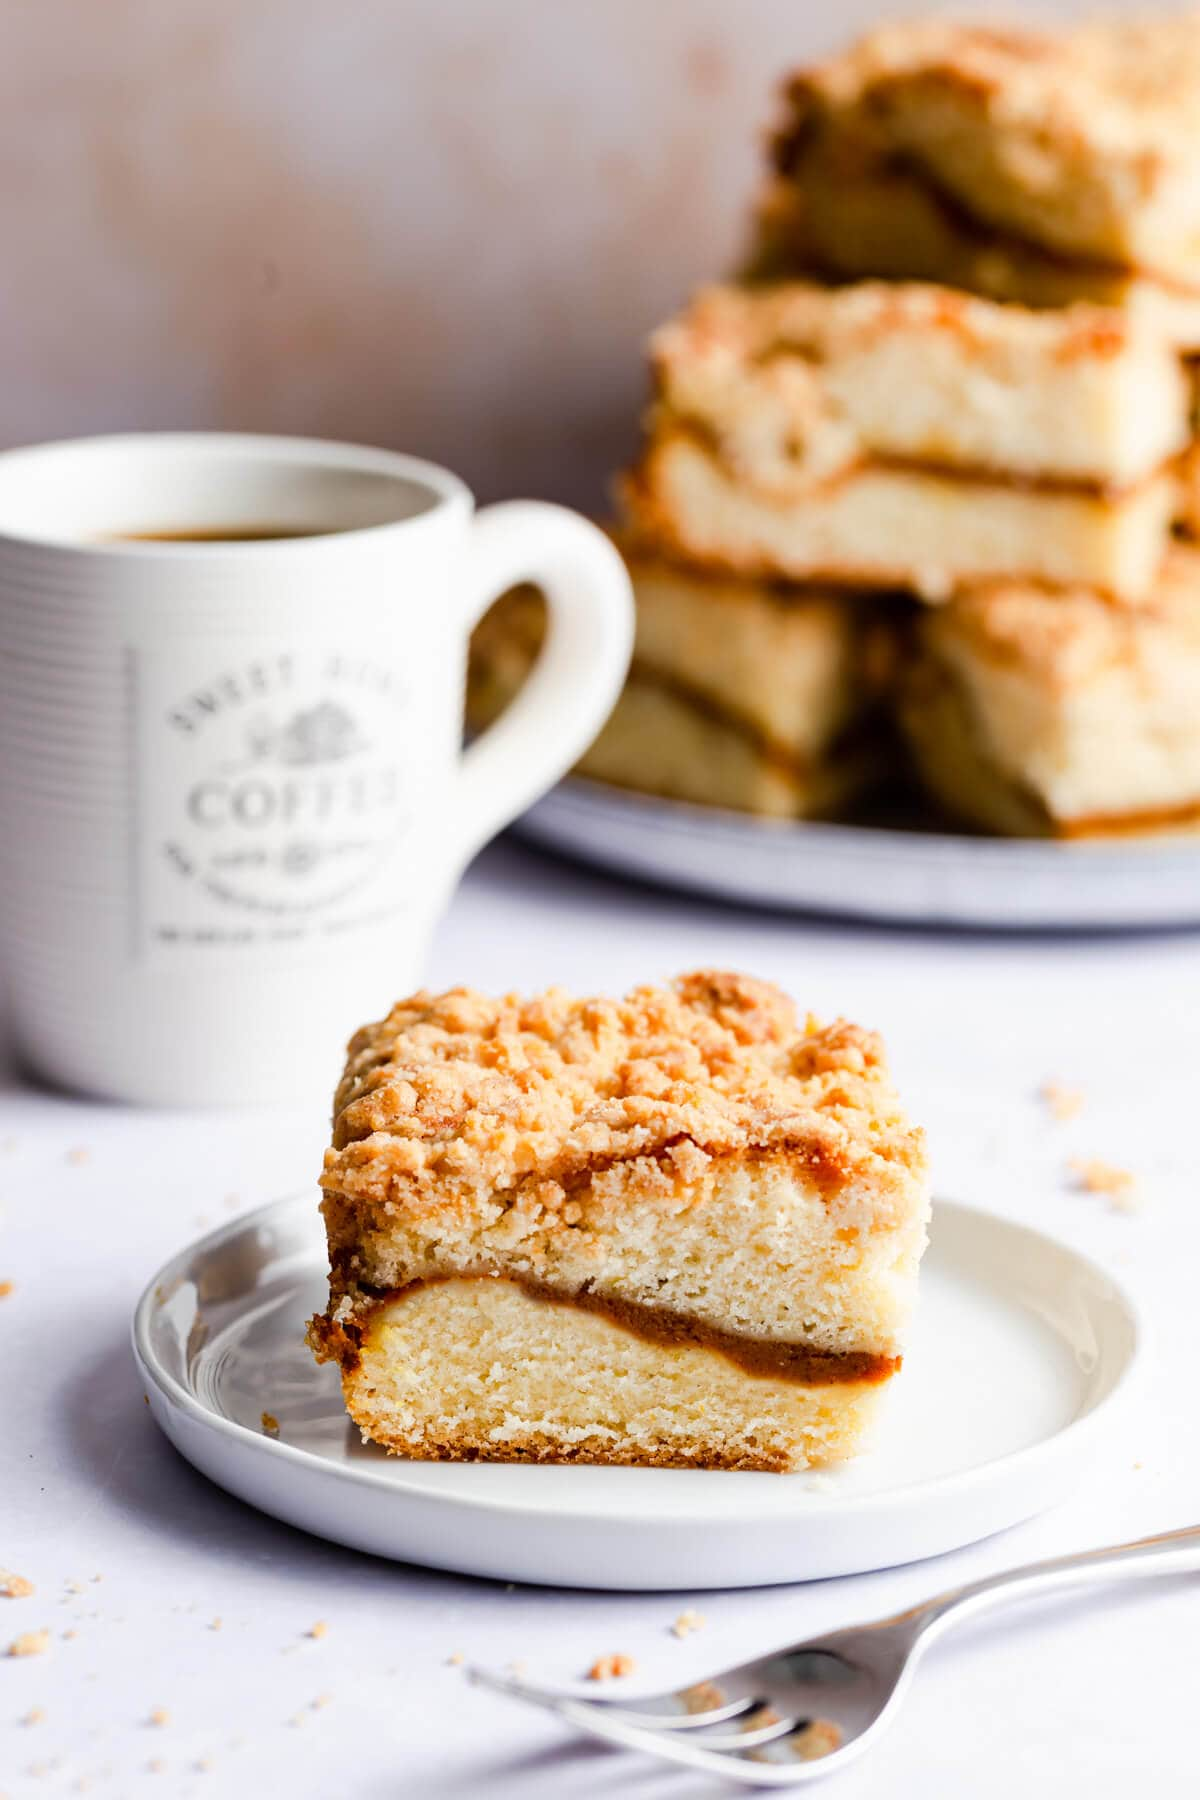 45 degree angle photo of an individual slice of pumpkin coffee cake on a small plate